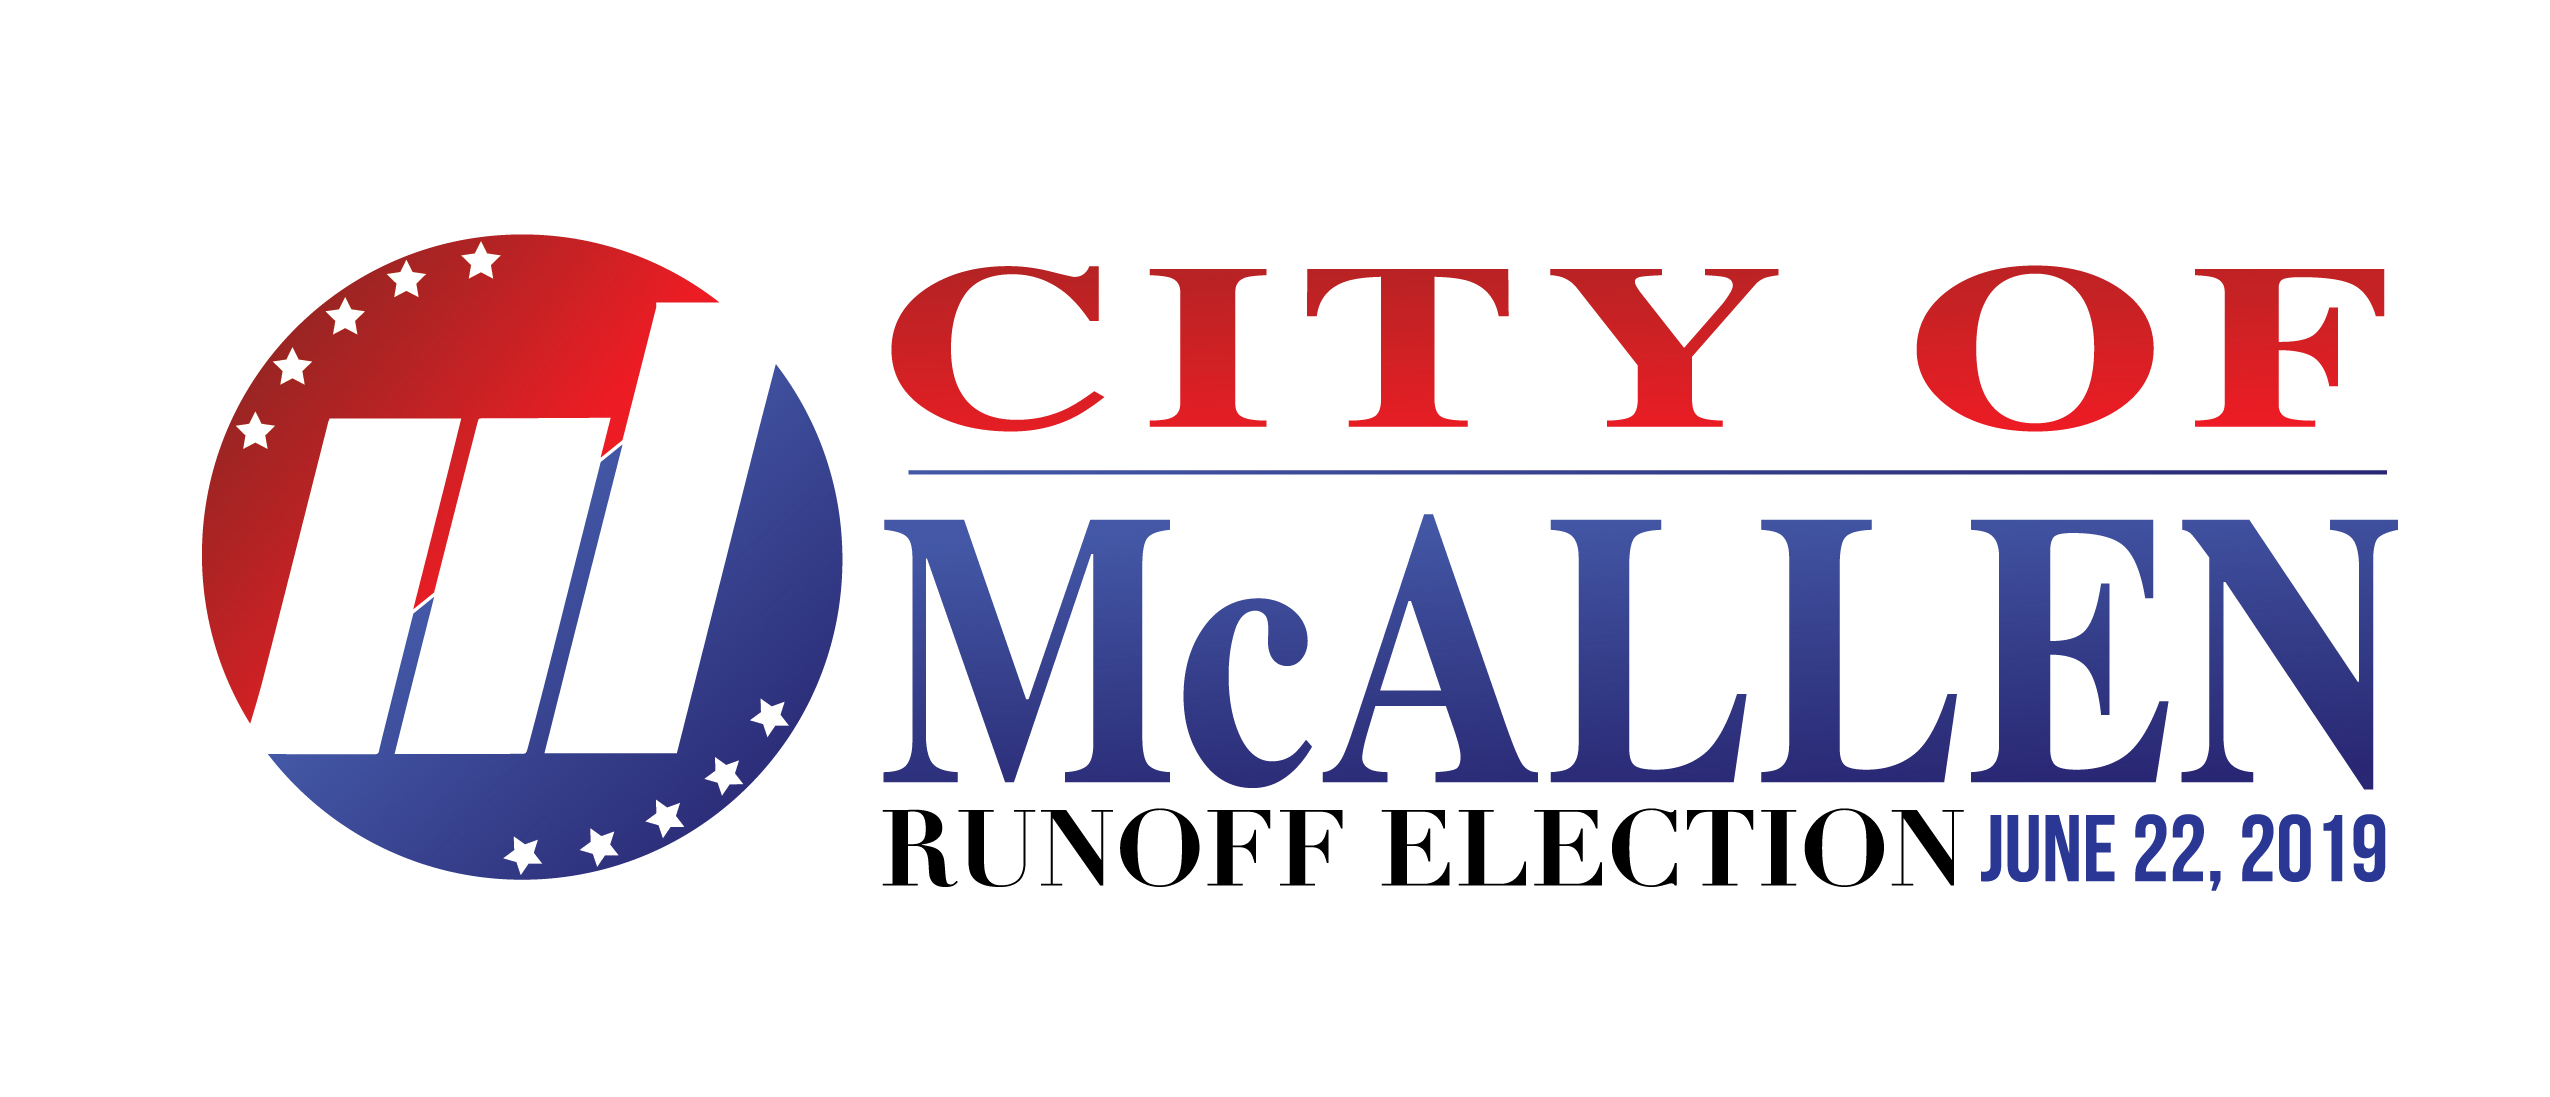 city of mcallen gral election 2019 logo-01-01